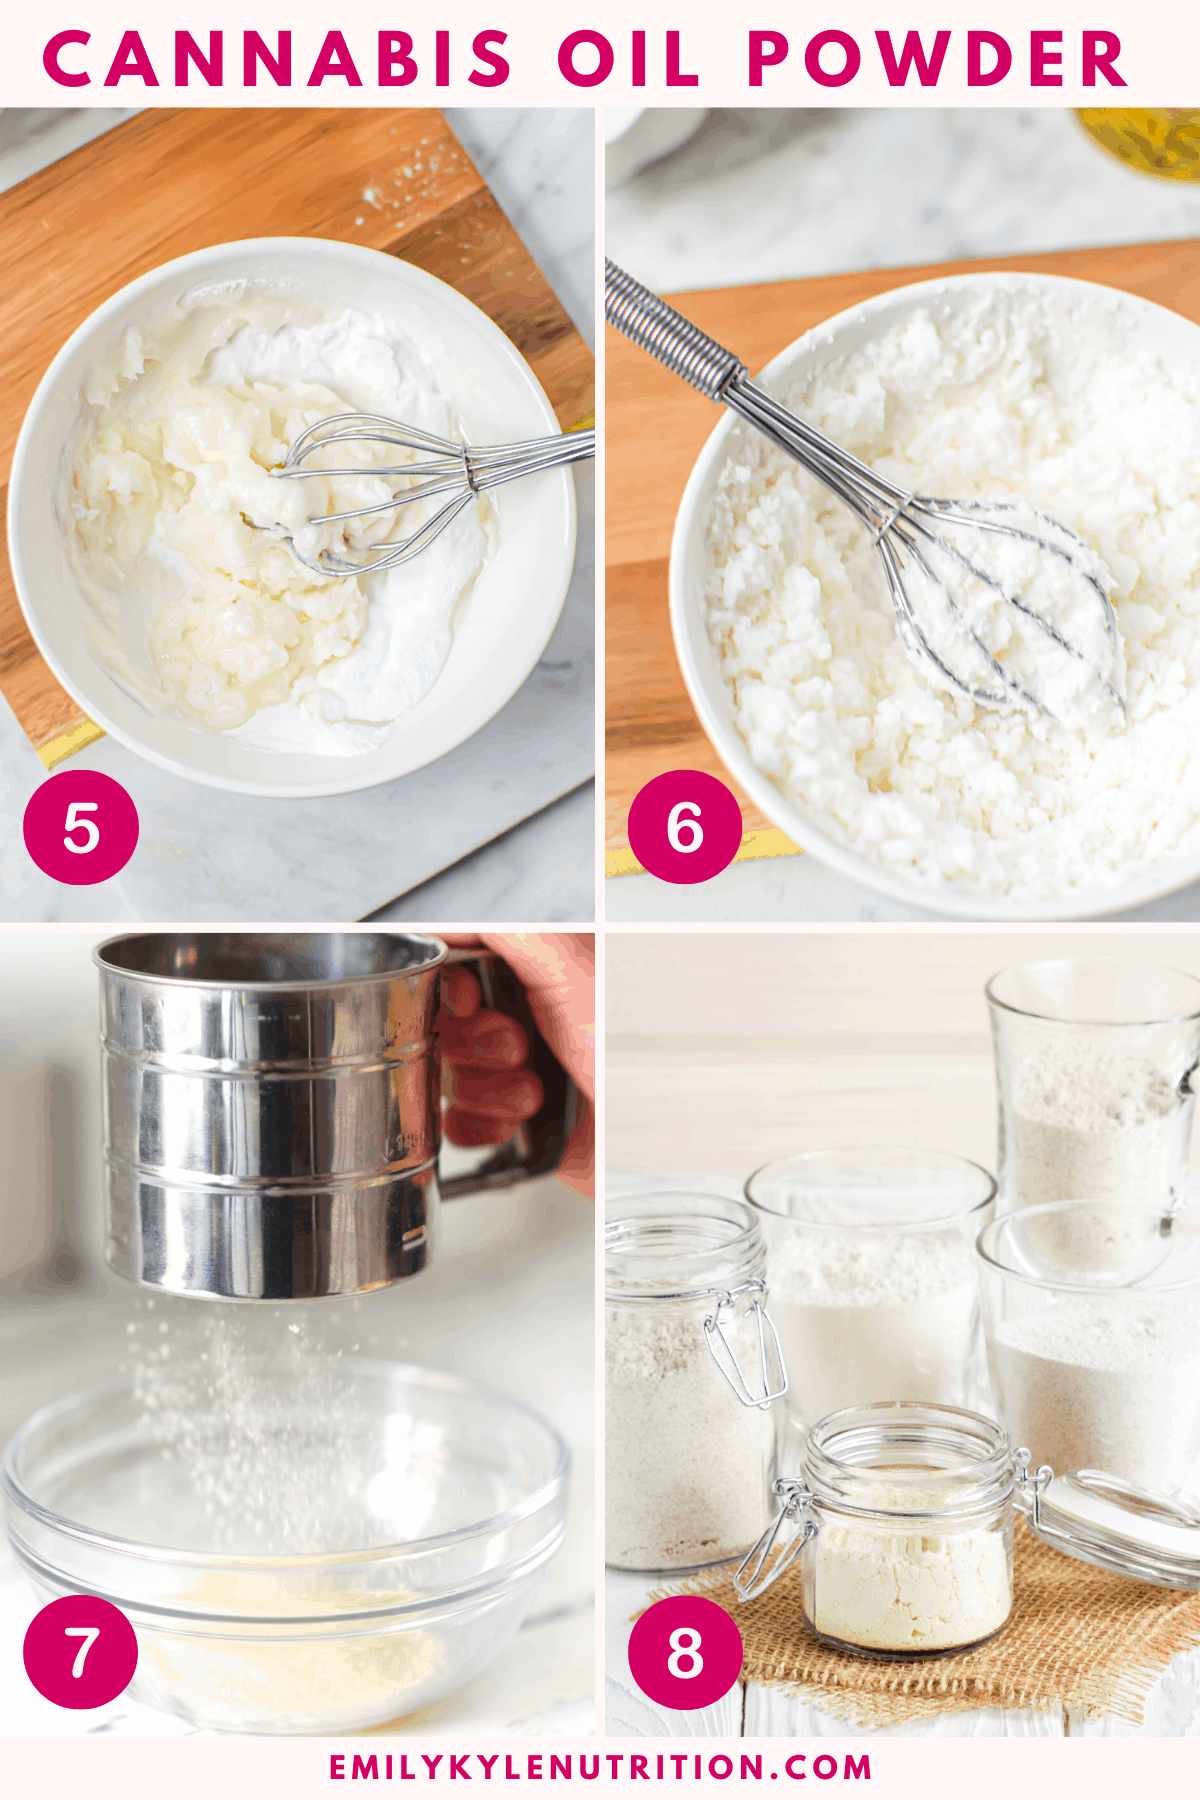 A 4 step collage showing the mixing of the maltodextrin powder, running it through a sifter, and the final product.